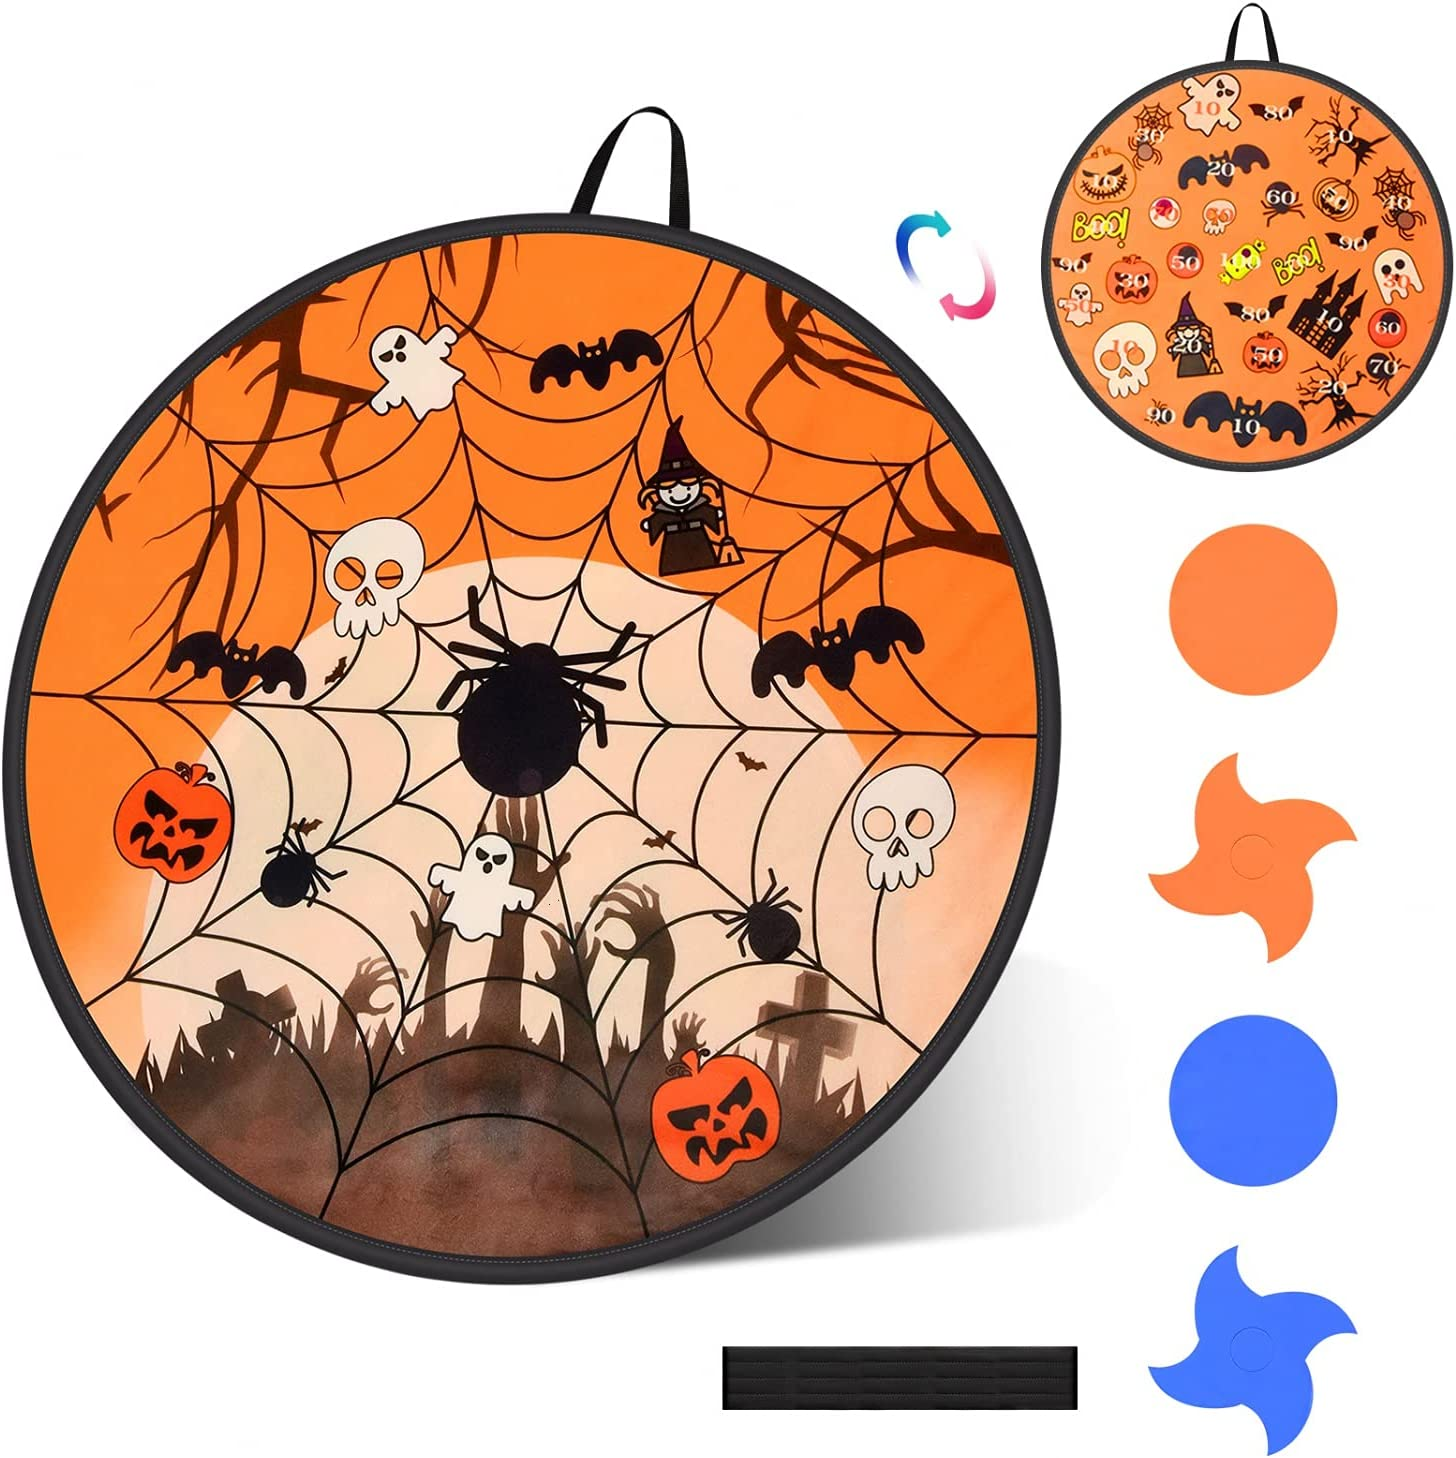 JETEHO Halloween Dart Board Game Set for Kids, 29 Inch Double-Si